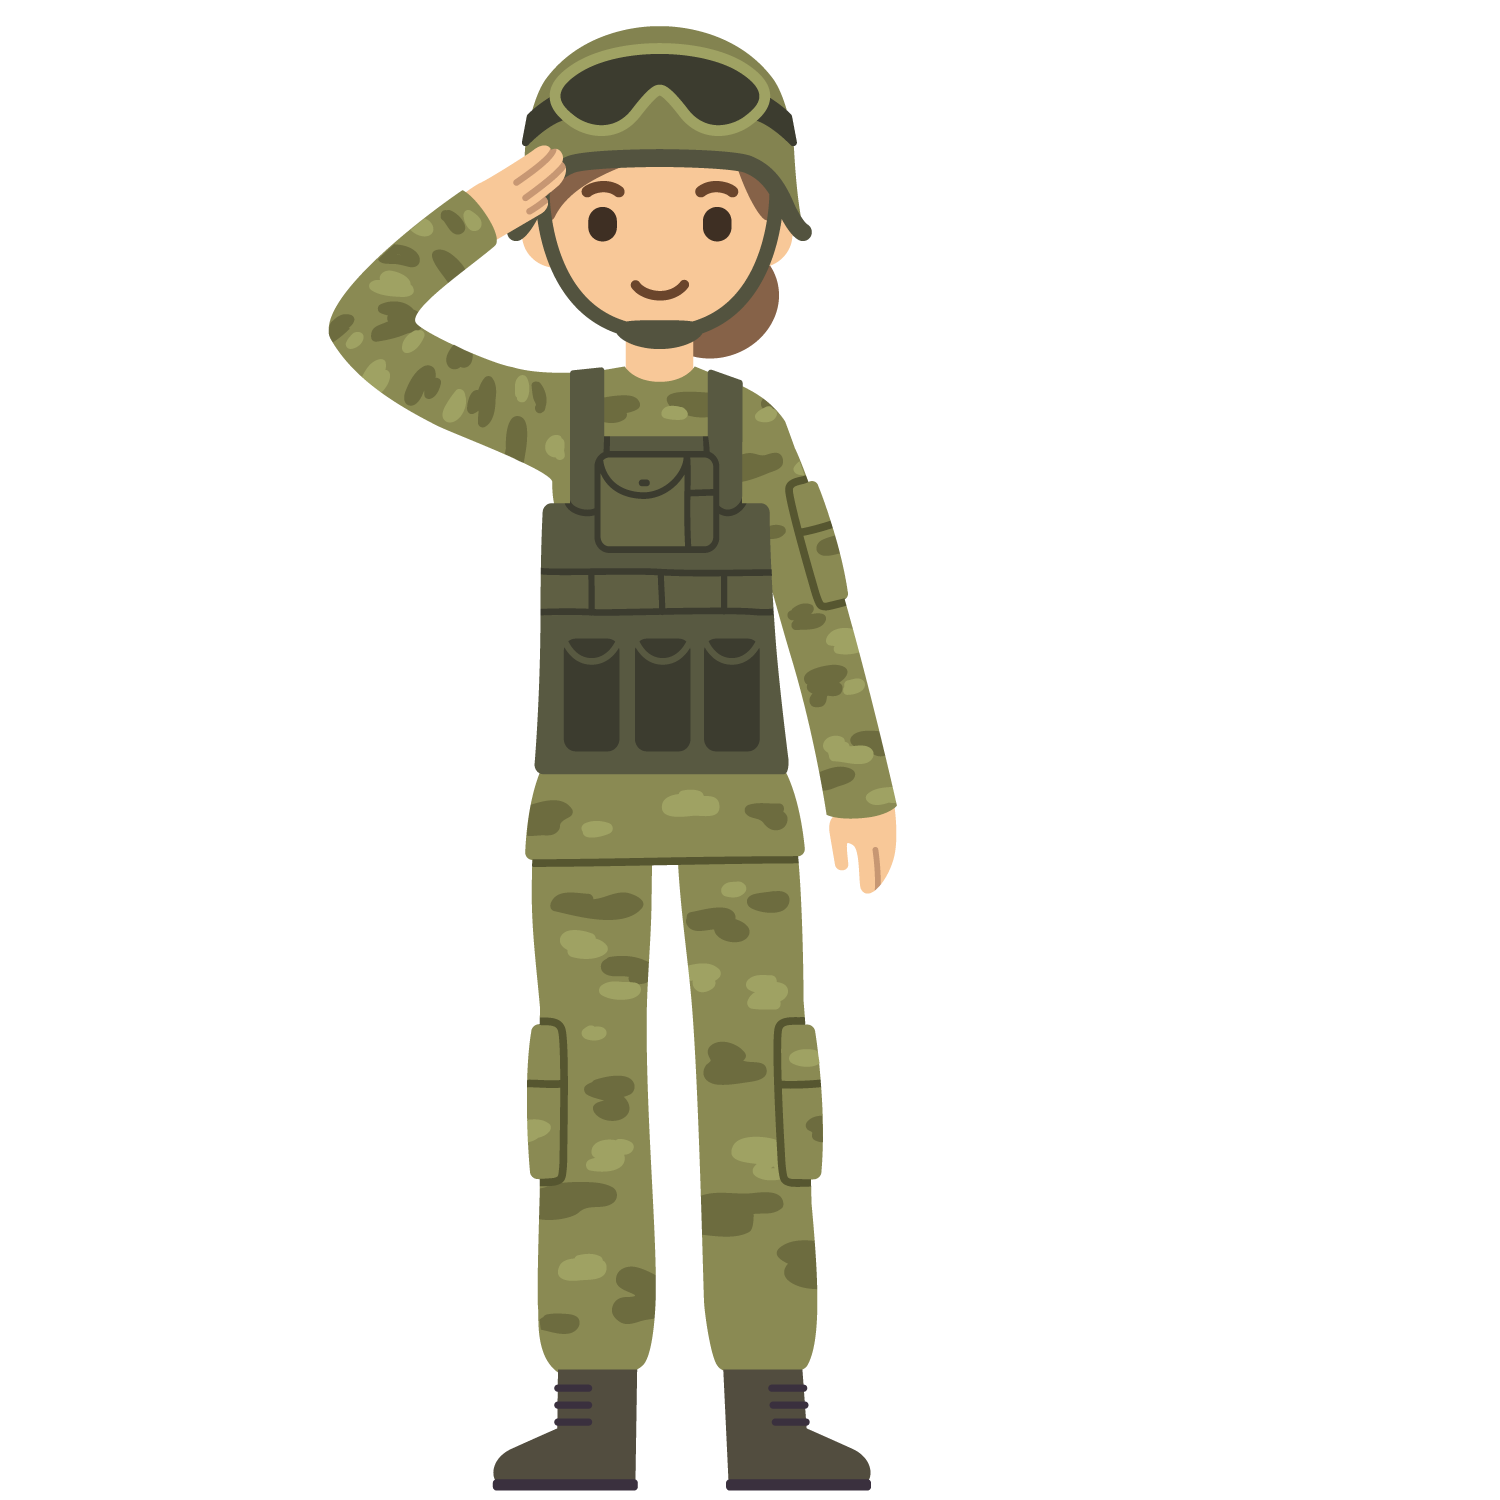 Cartoon soldier png. Salute army wearing a